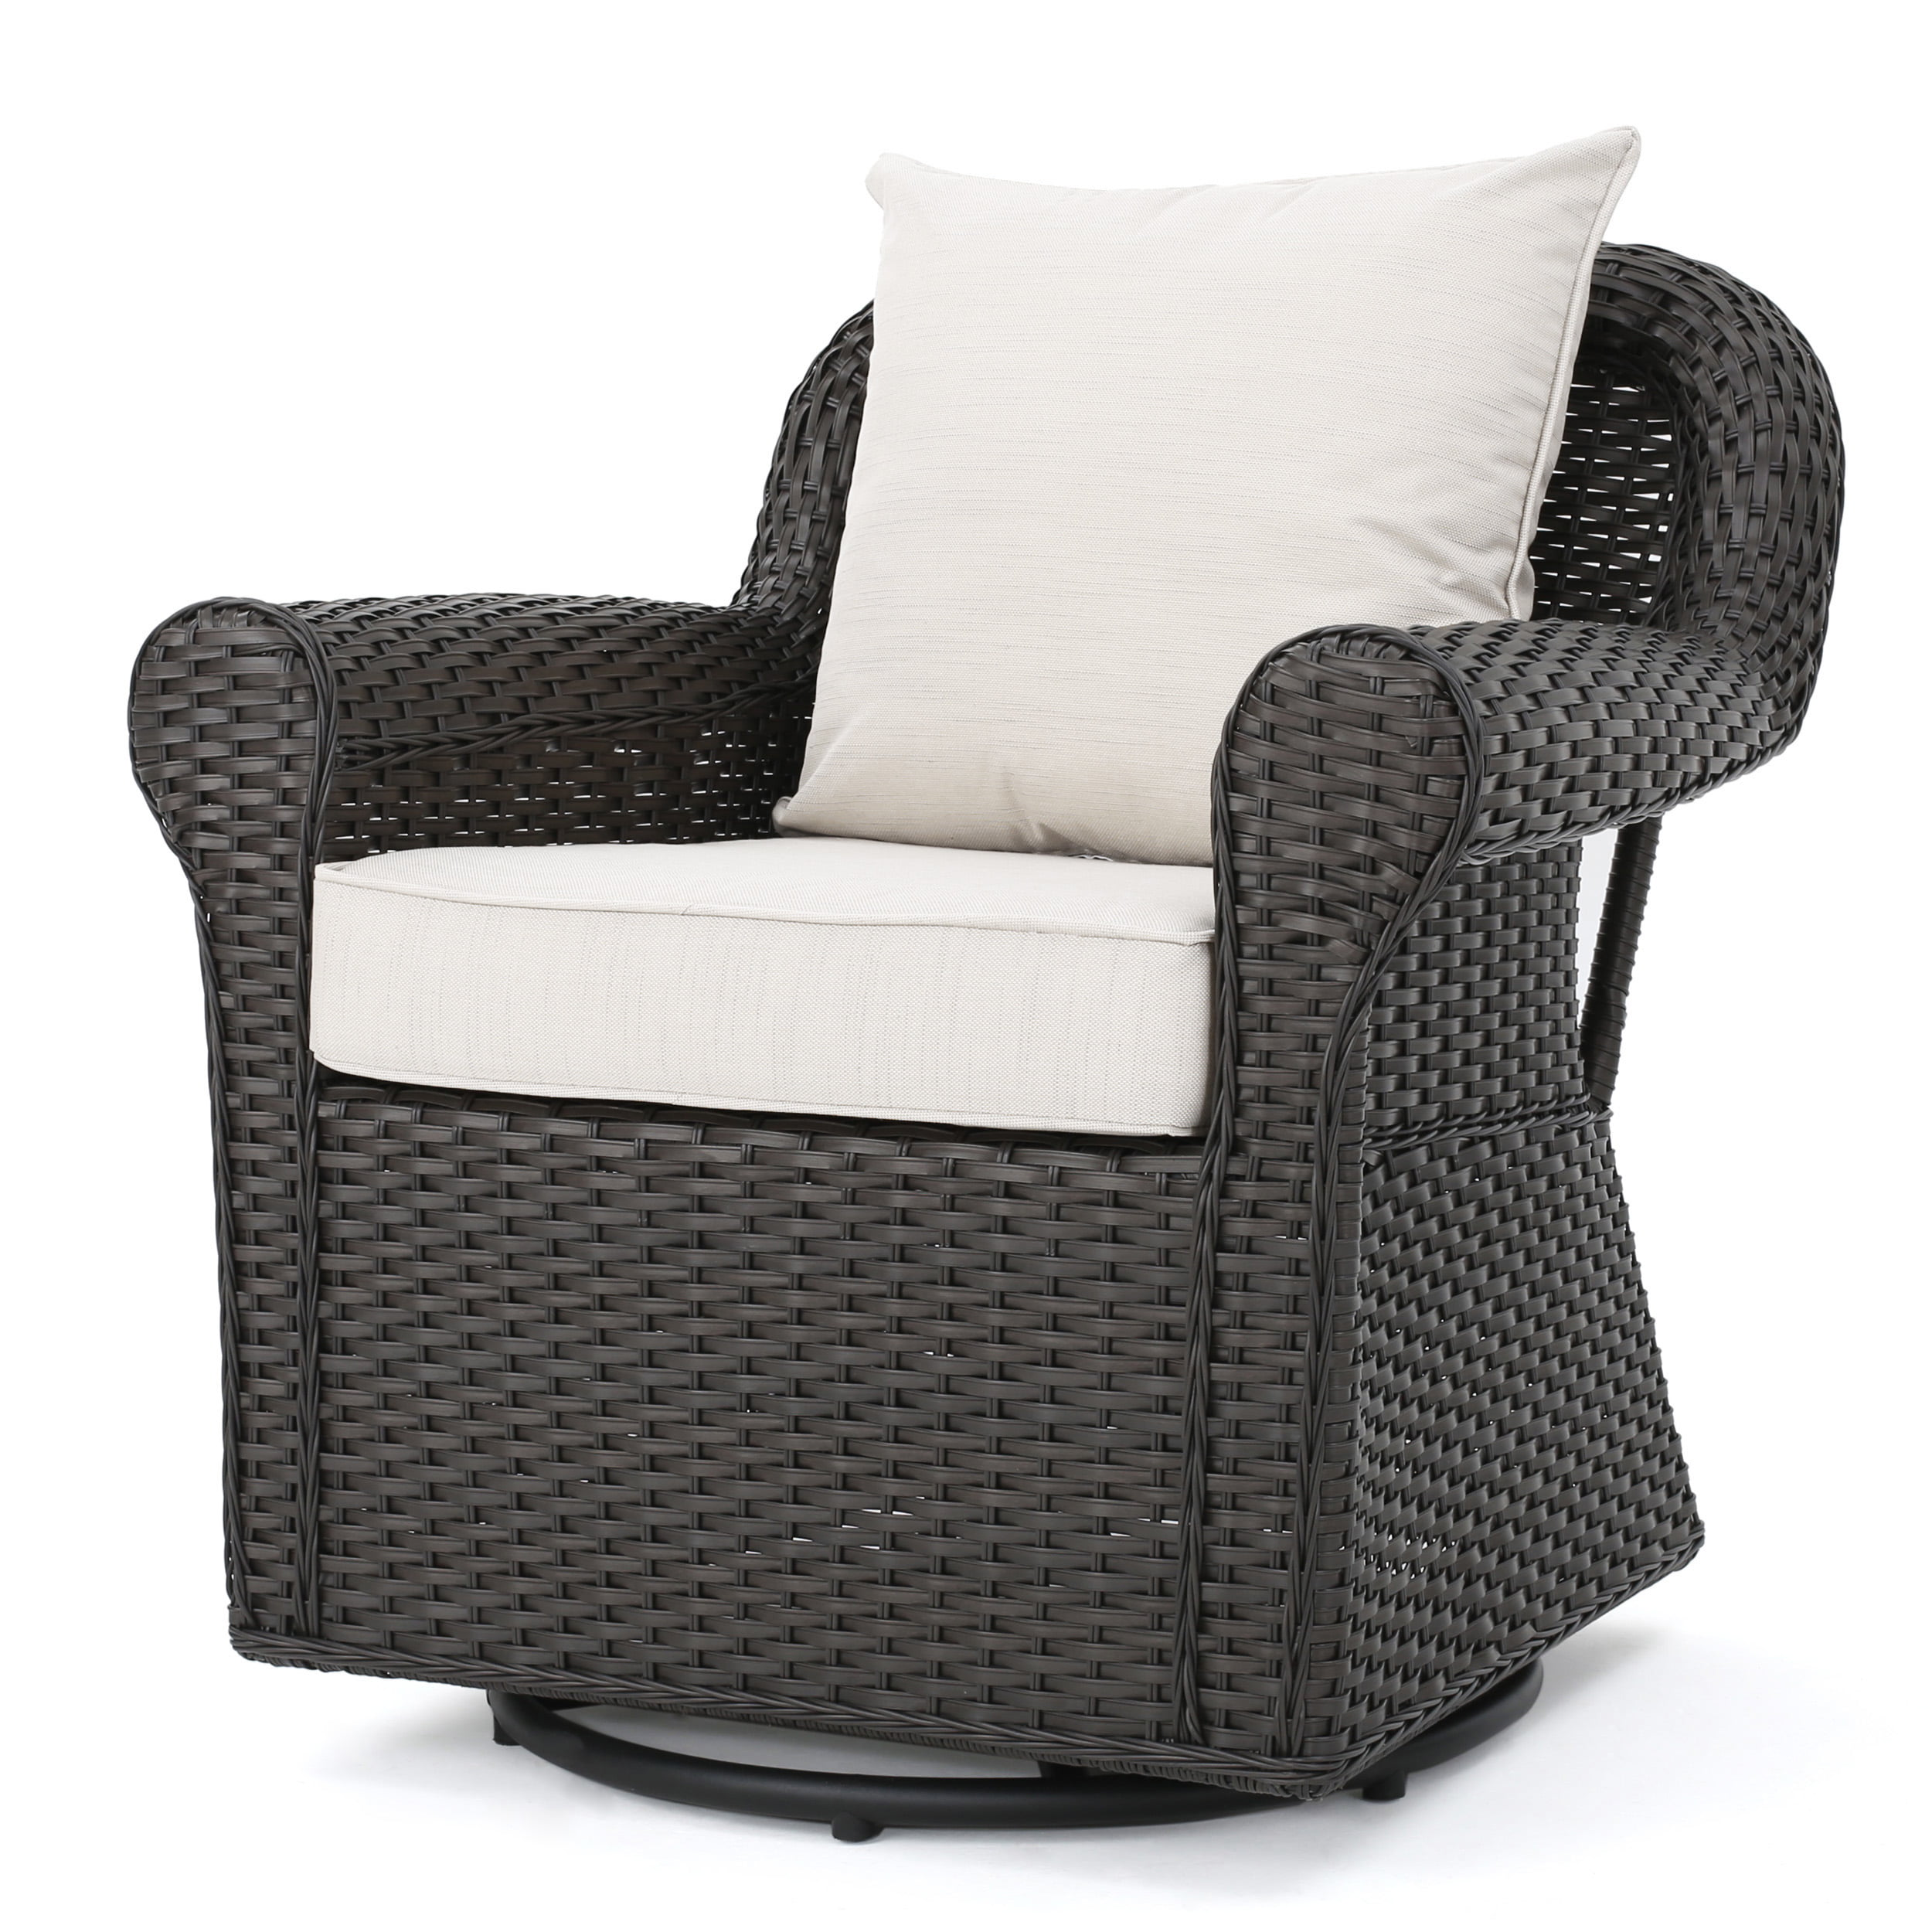 Admiral Outdoor Dark Brown Wicker Swivel Rocking Chair with Cushions, Beige by GDF Studio